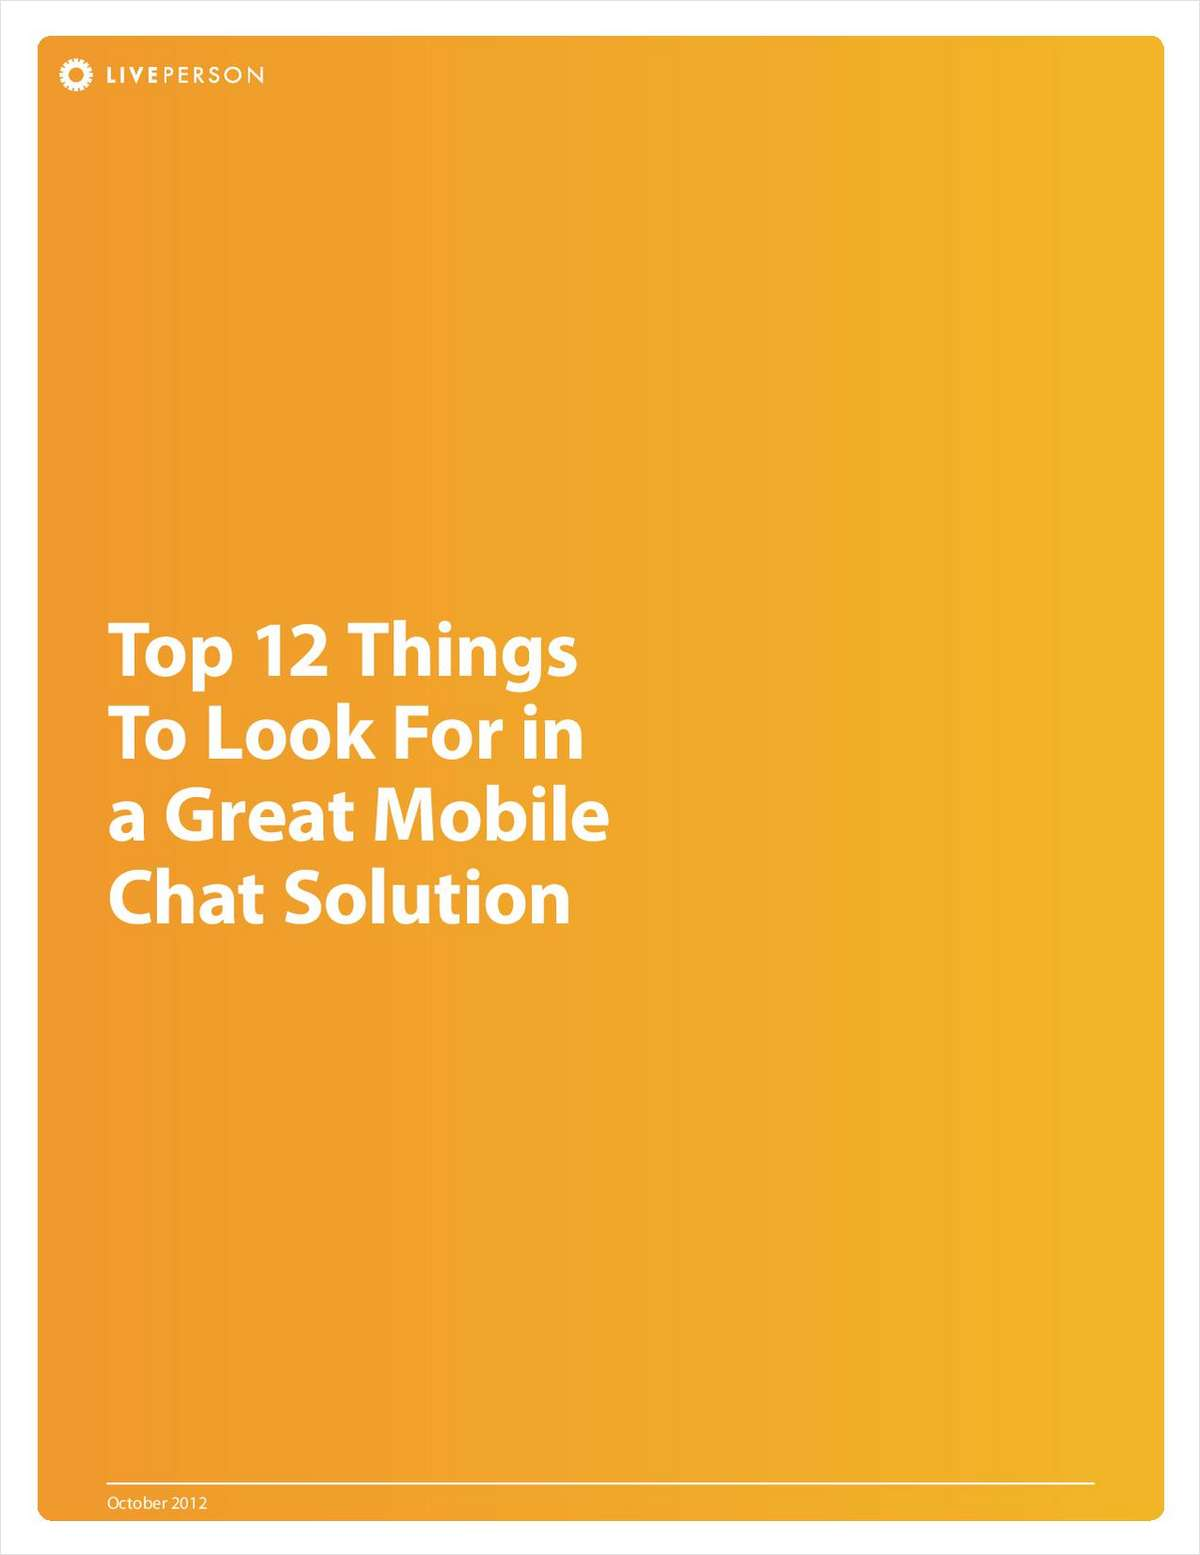 Top 12 Things to Look for in a Great Mobile Chat Solution